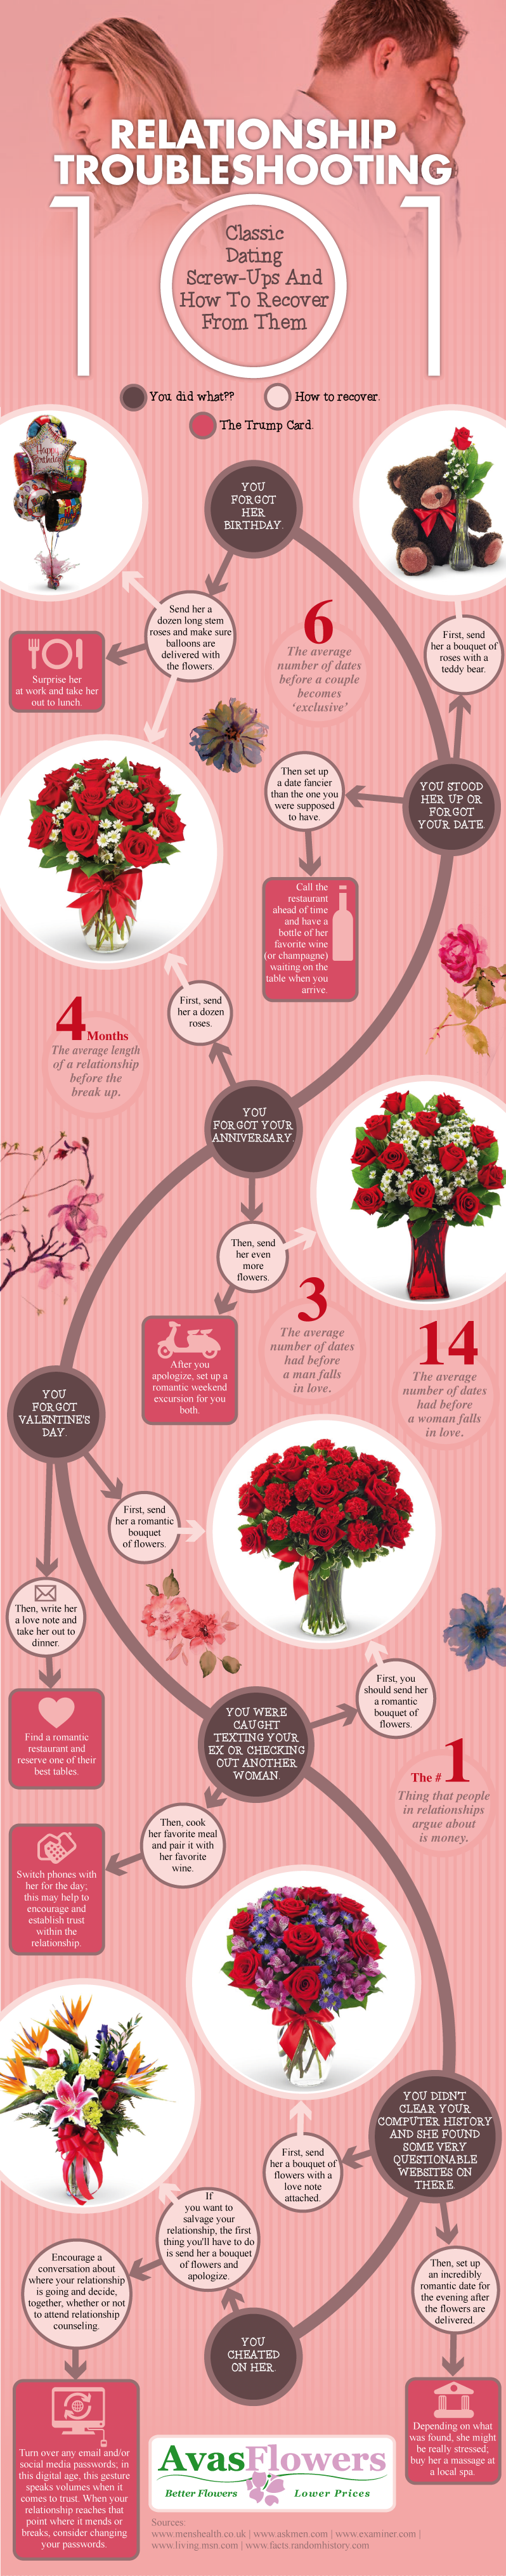 Infographic: Relationship Troubleshooting